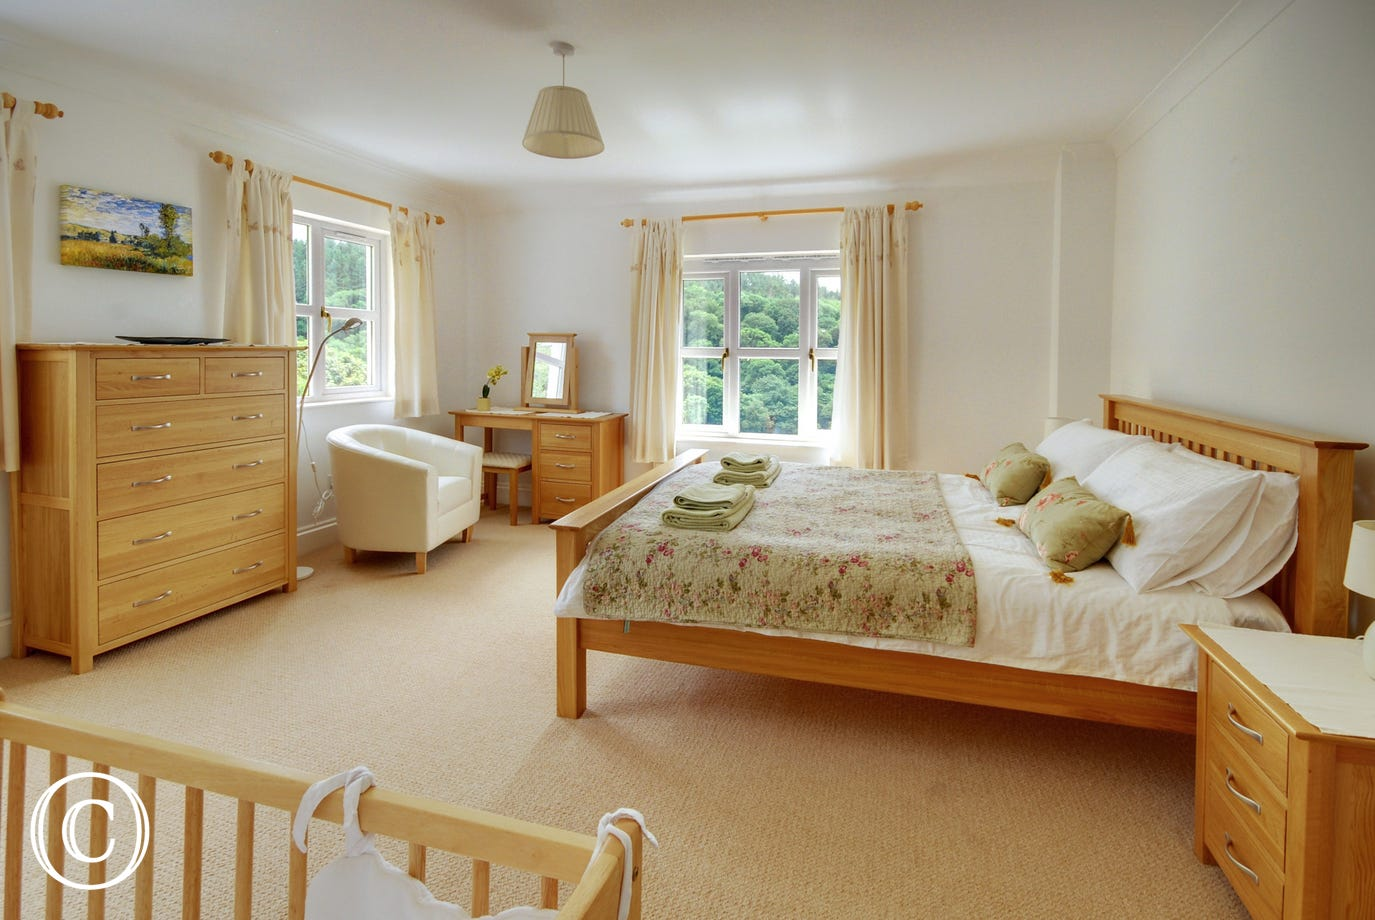 Beautiful dual aspect master bedroom with wooden cot